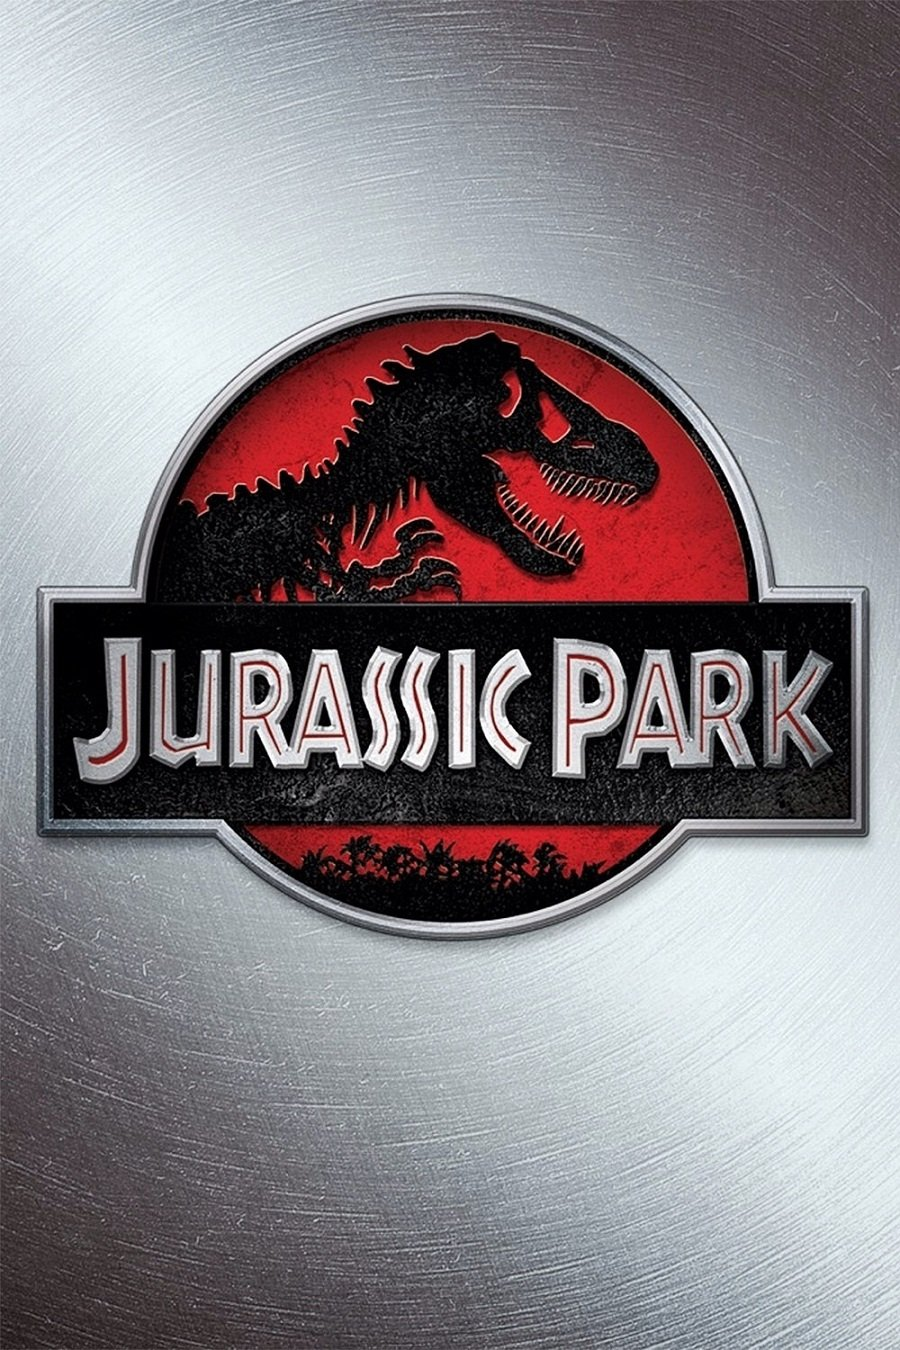 Wallpaper iphone jurassic park - Jurassic Park Iphone Wallpaper Jurassic Park Live Wallpaper 0 Html Code Choose The Image Below To Download It You Will Redirected To The